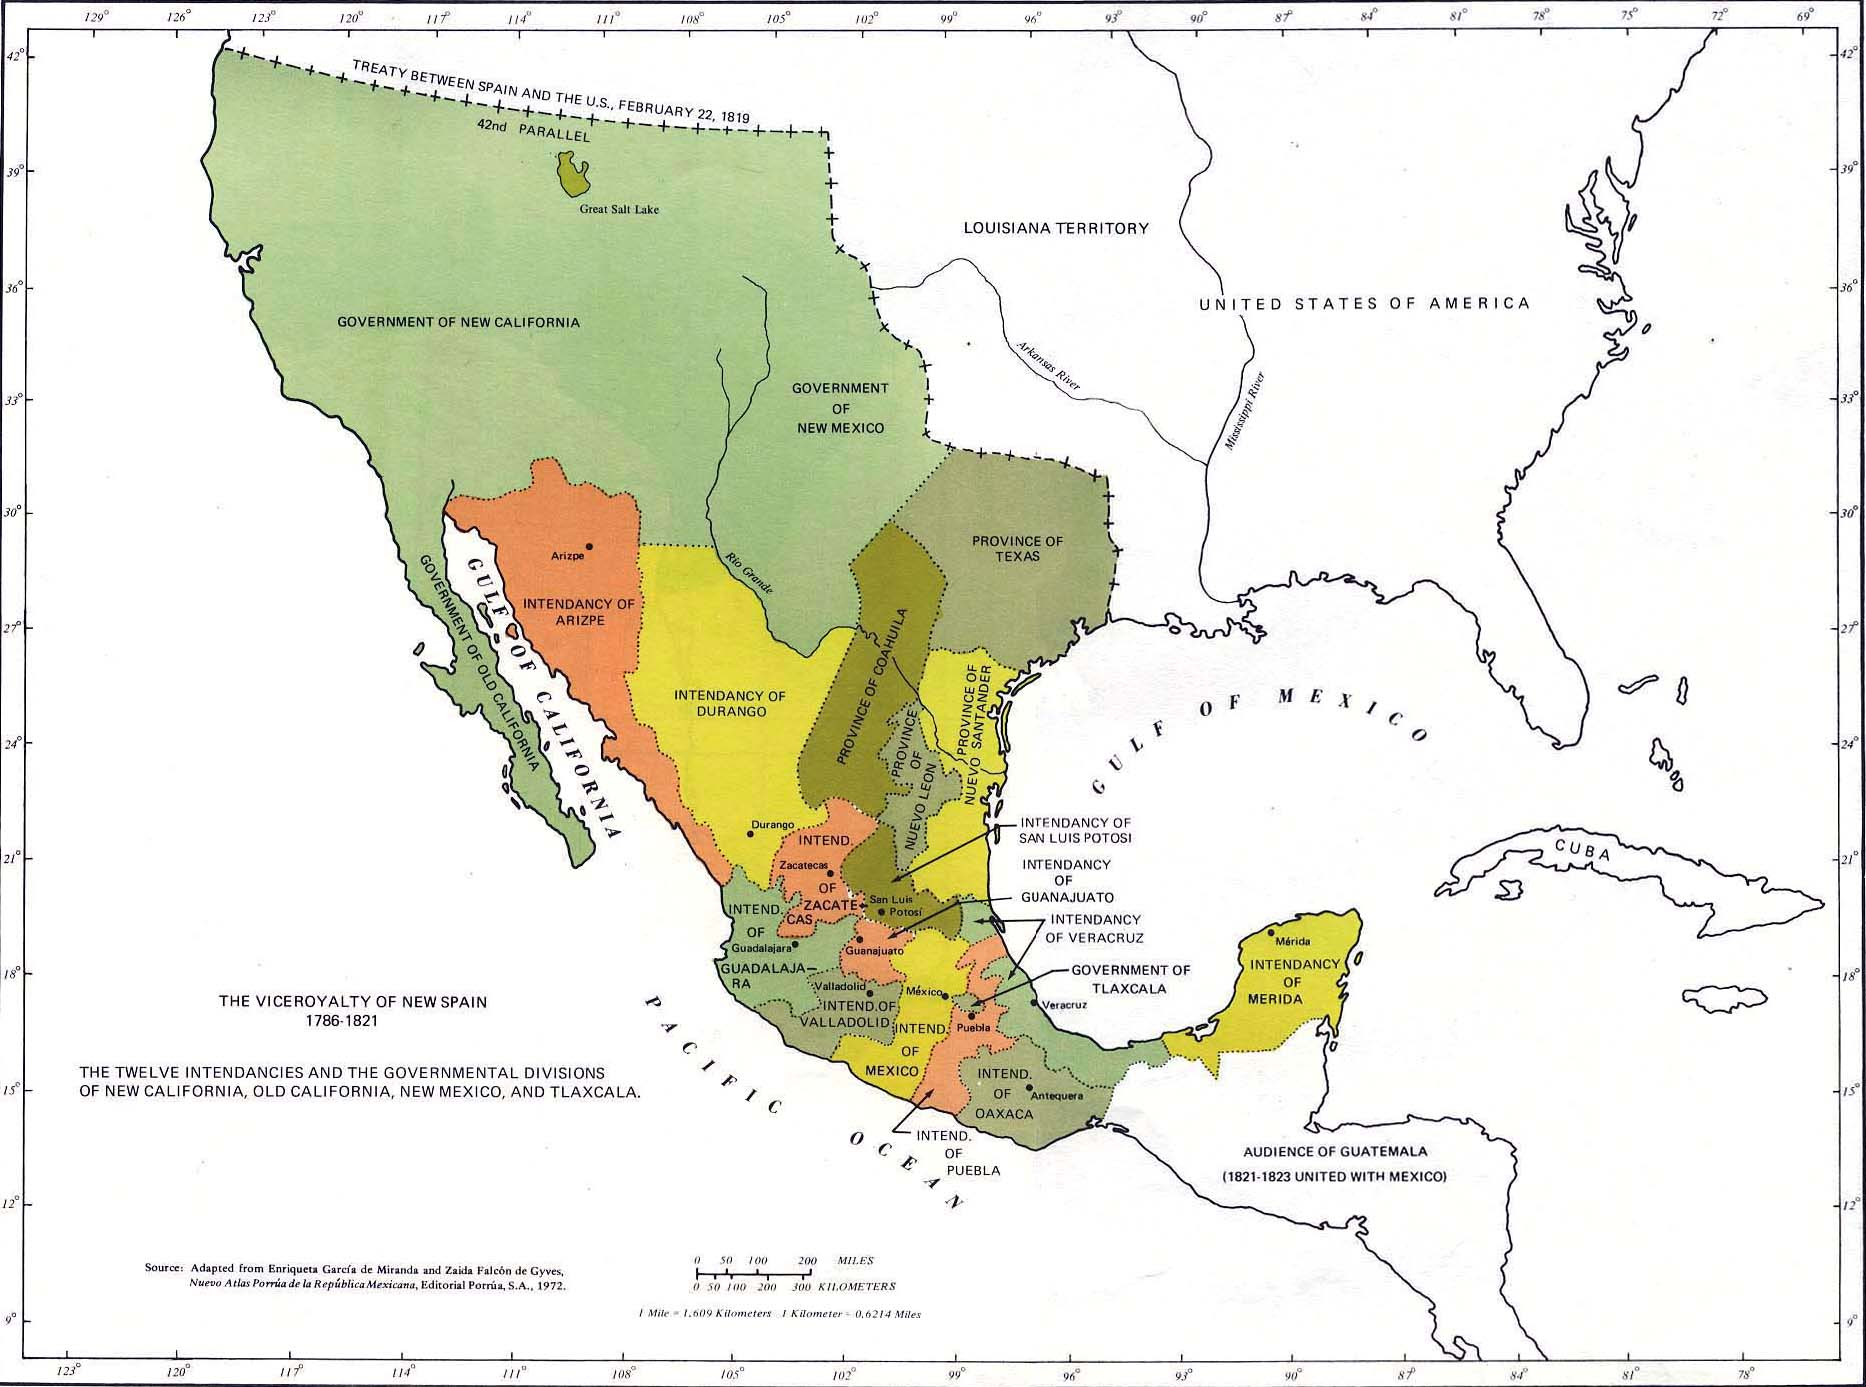 Map of Mexico 1786 1821